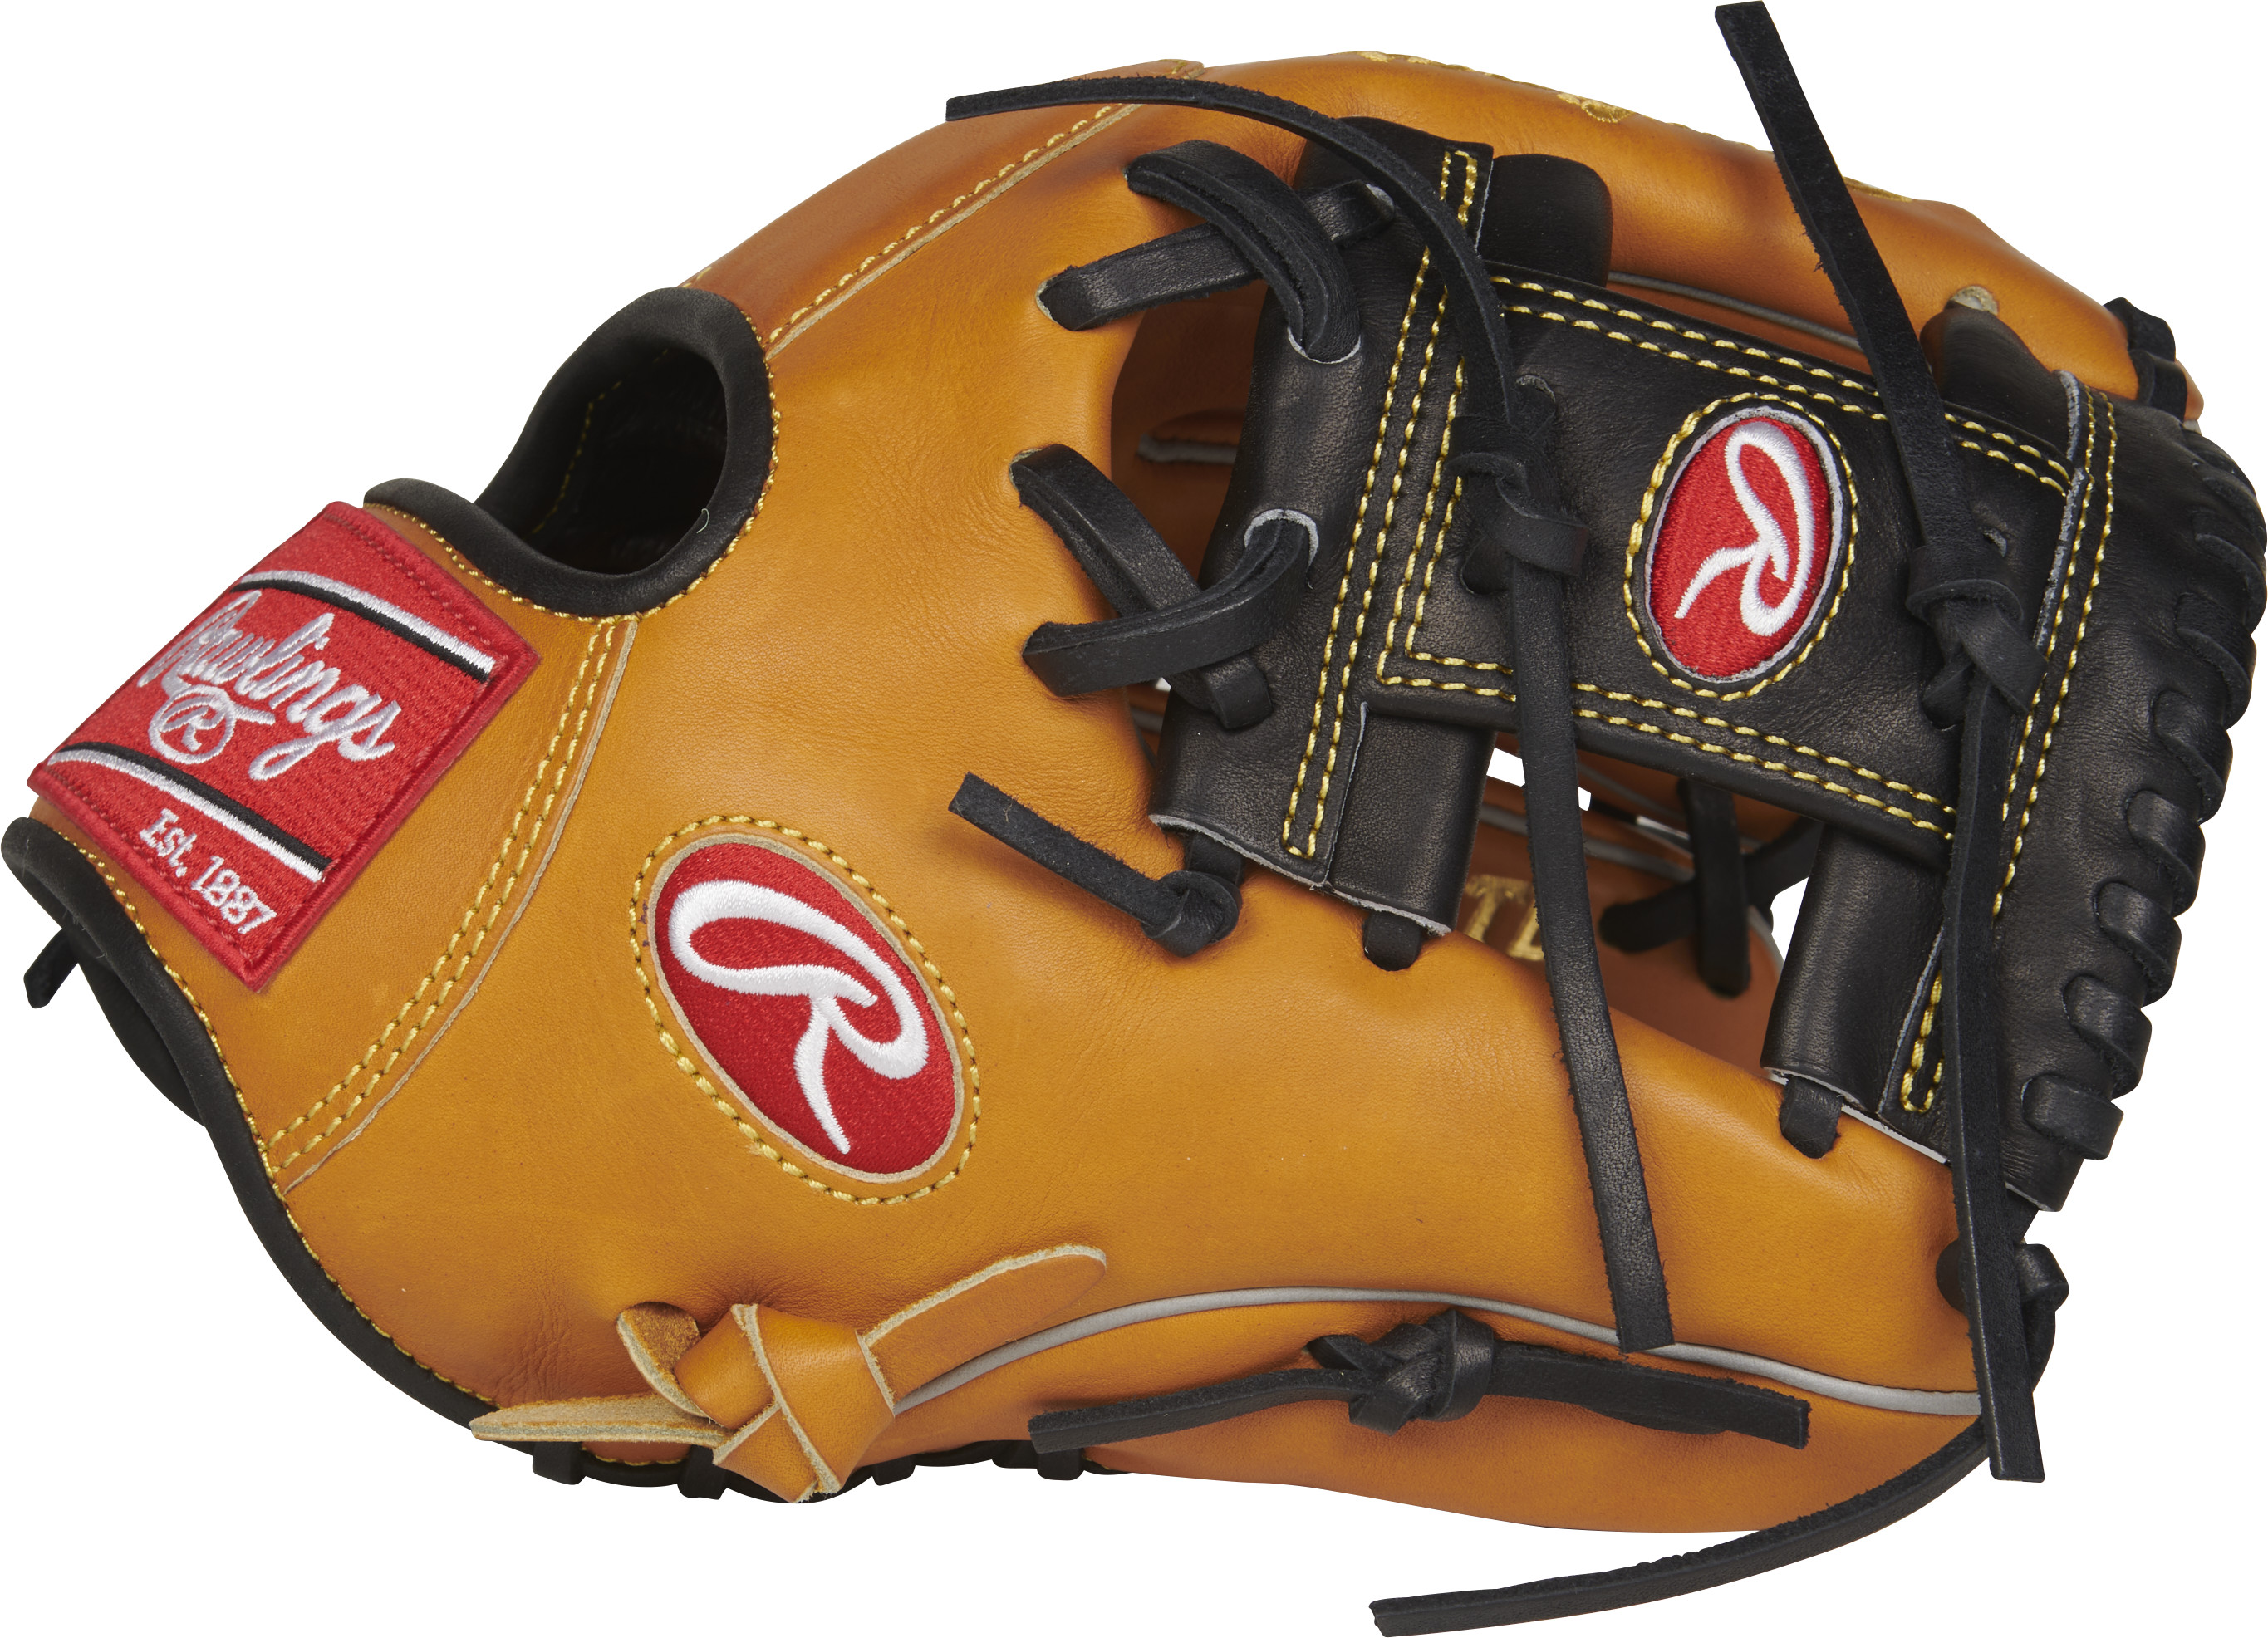 http://www.bestbatdeals.com/images/gloves/rawlings/PROS204-2RTB-3.jpg